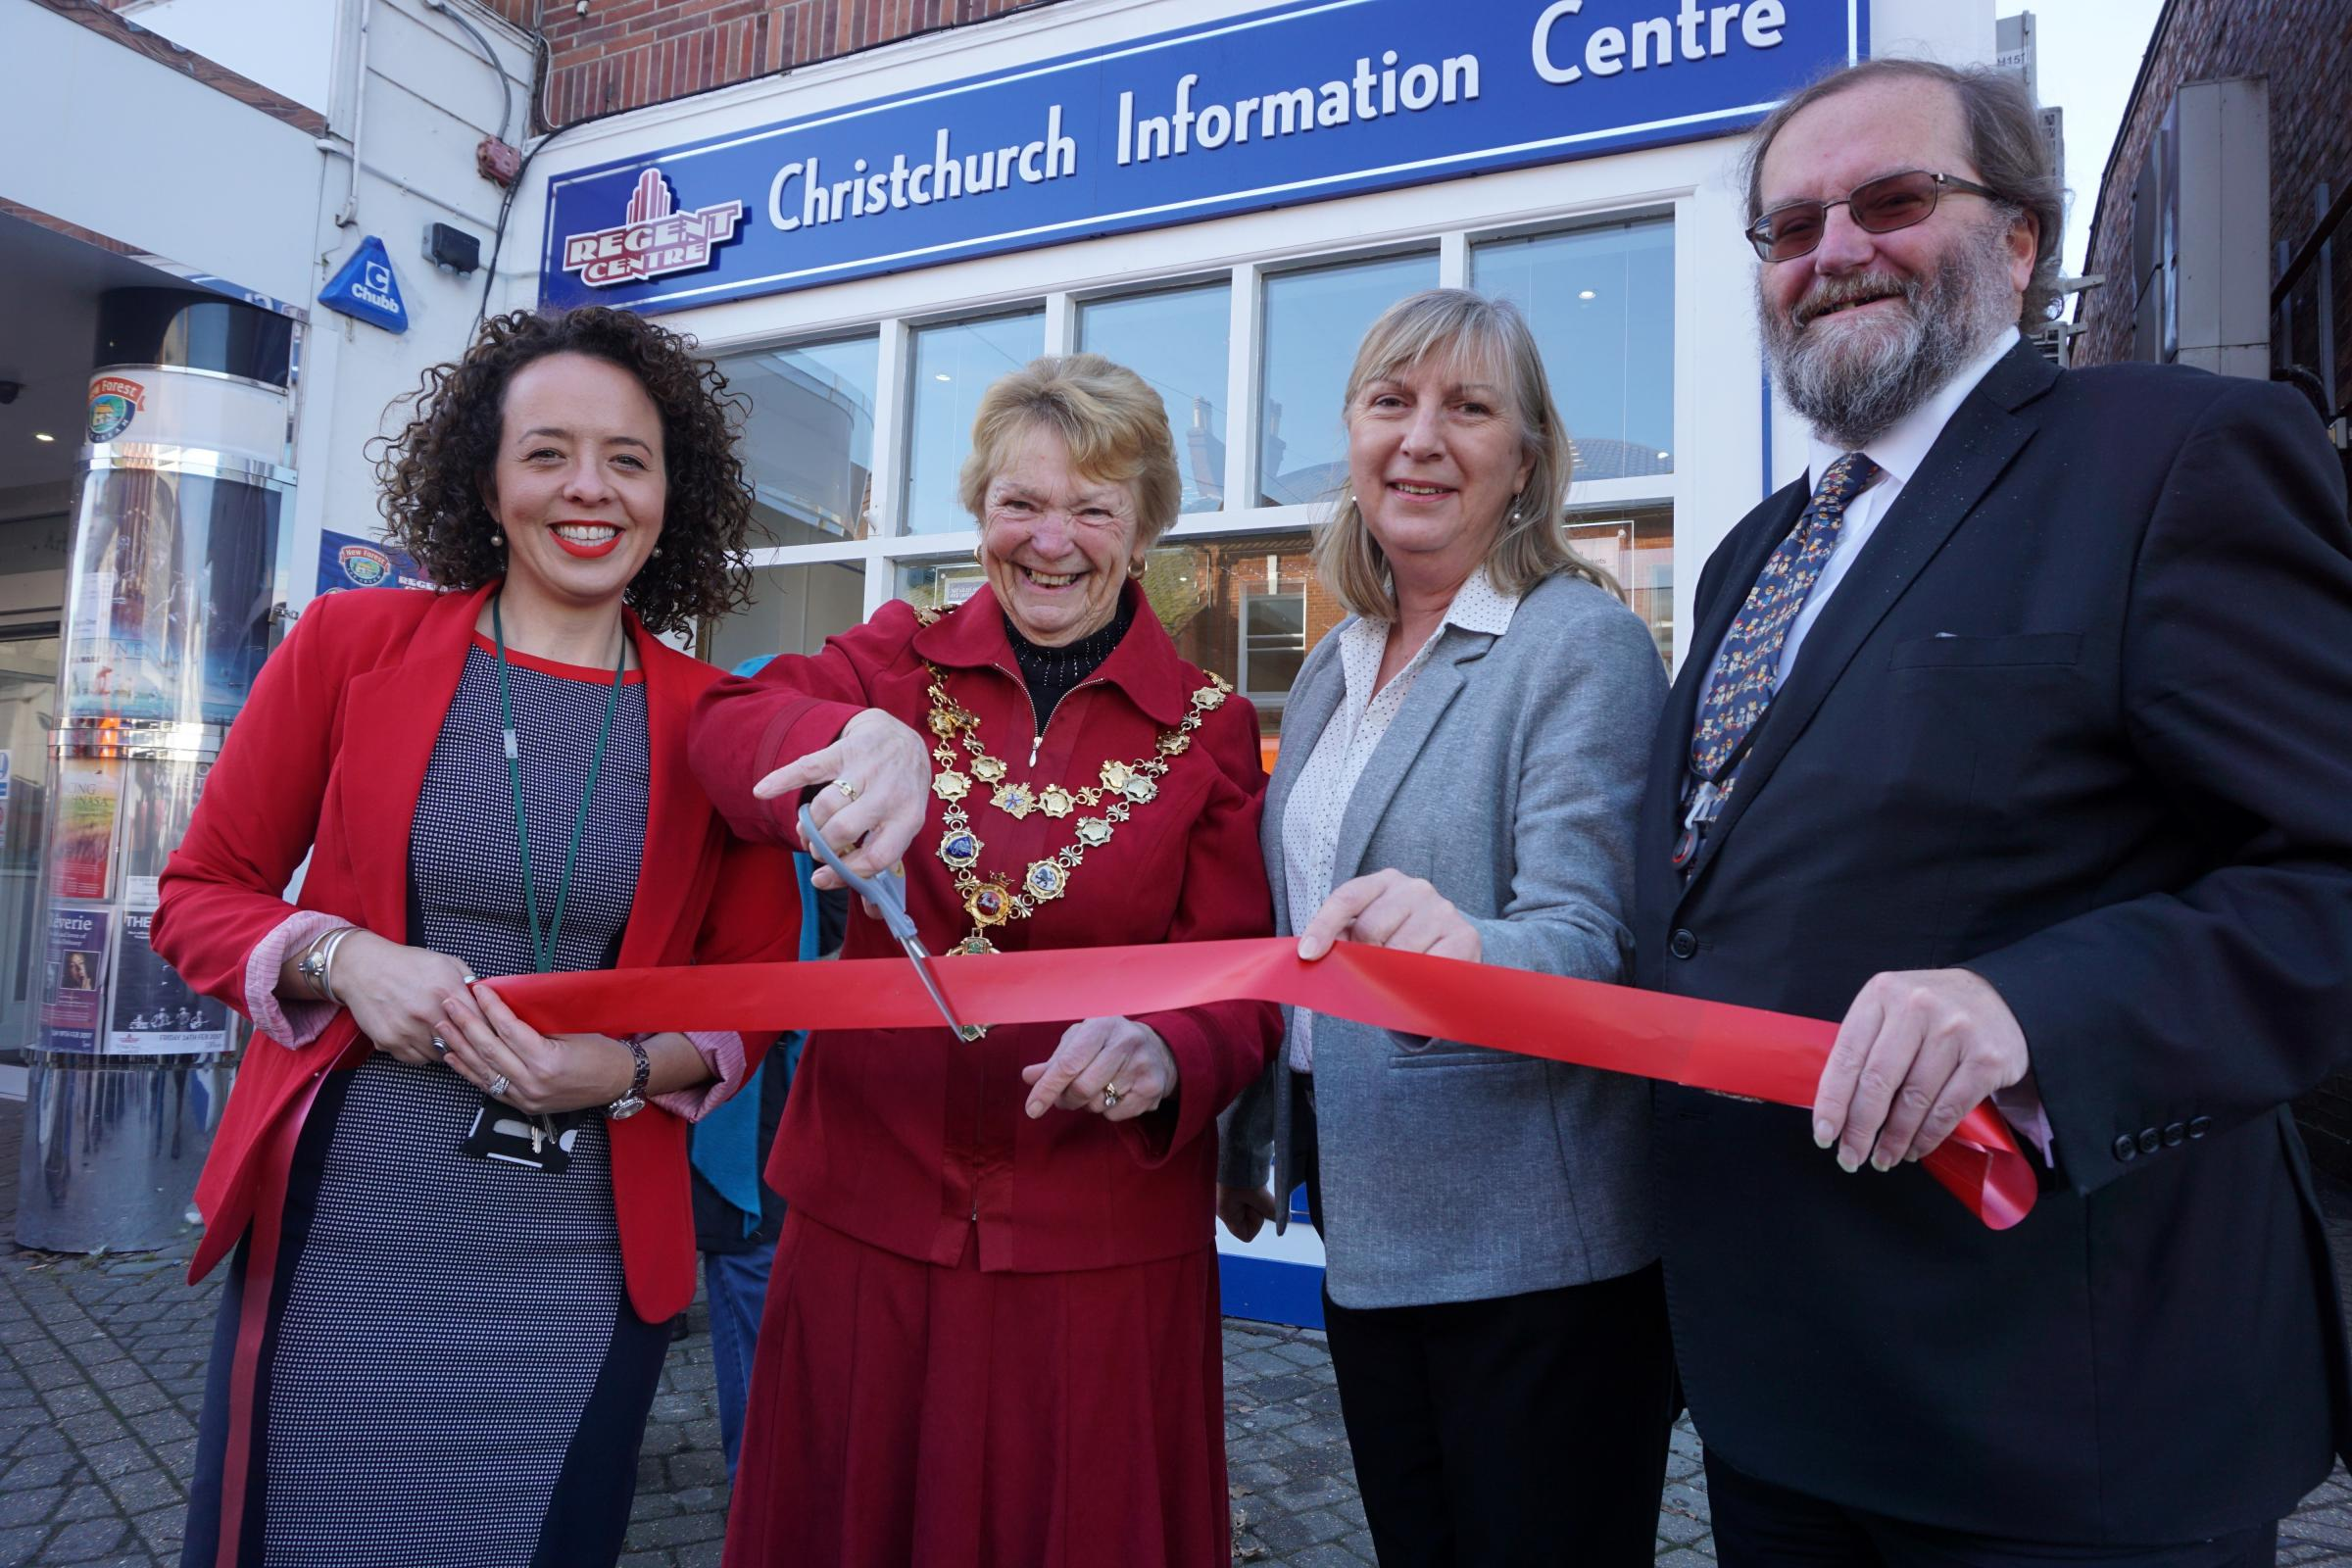 The Mayor of Christchurch cuts the ribbon on the new Christchurch Information Centre in the High Street.  Sara Stewart-Haddow, manager of Christchurch Information Centre, the Mayor of Christchurch, Cllr Trish Jamieson, Christopher Root, Regent Chairman of